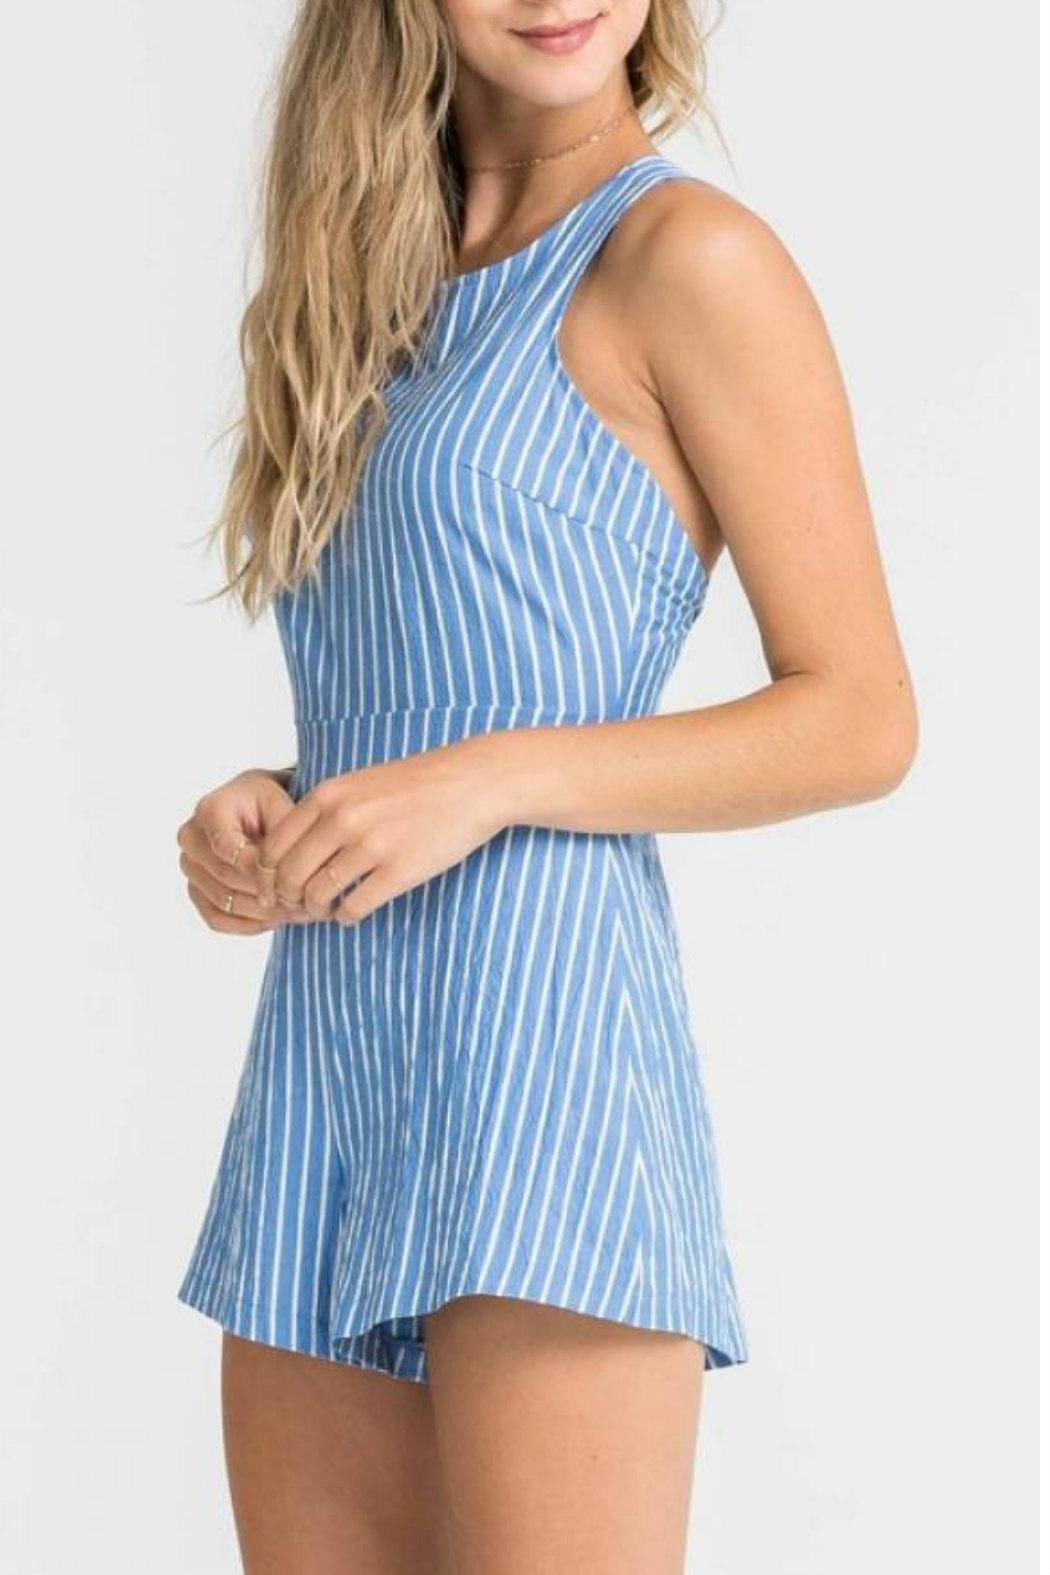 Lush Clothing  Strappy Striped Romper - Side Cropped Image